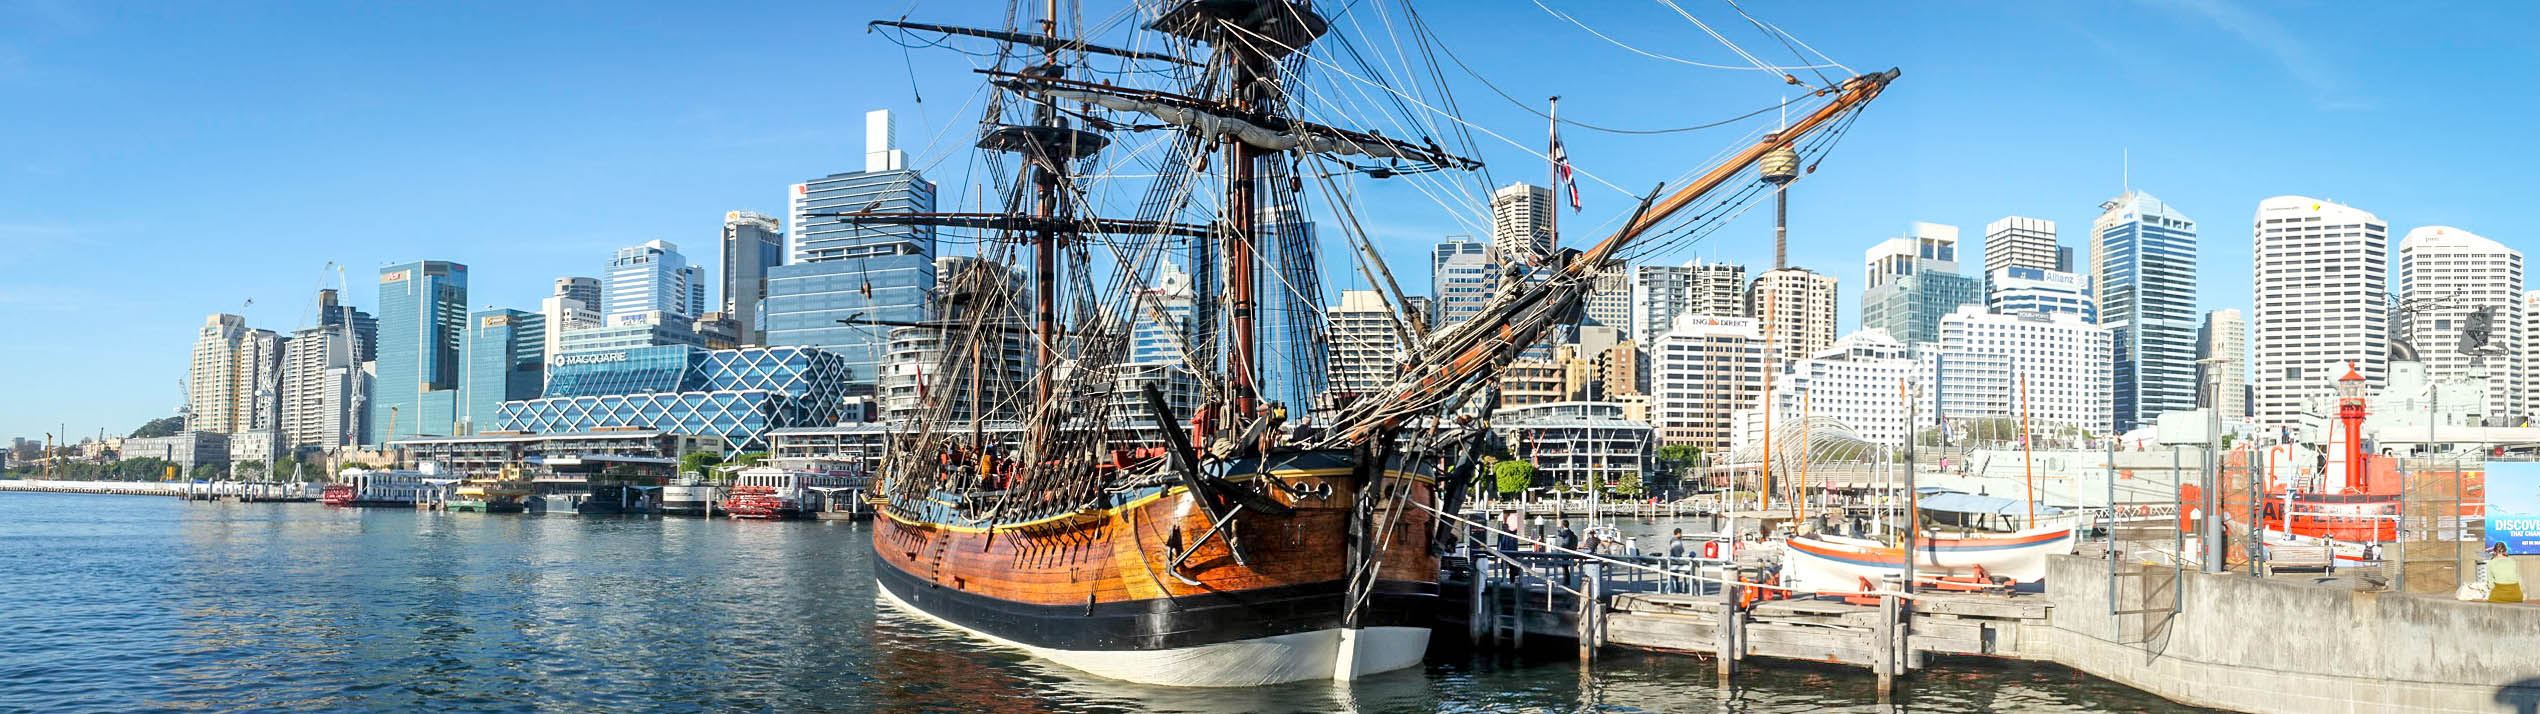 HM Bark Endeavour Replica